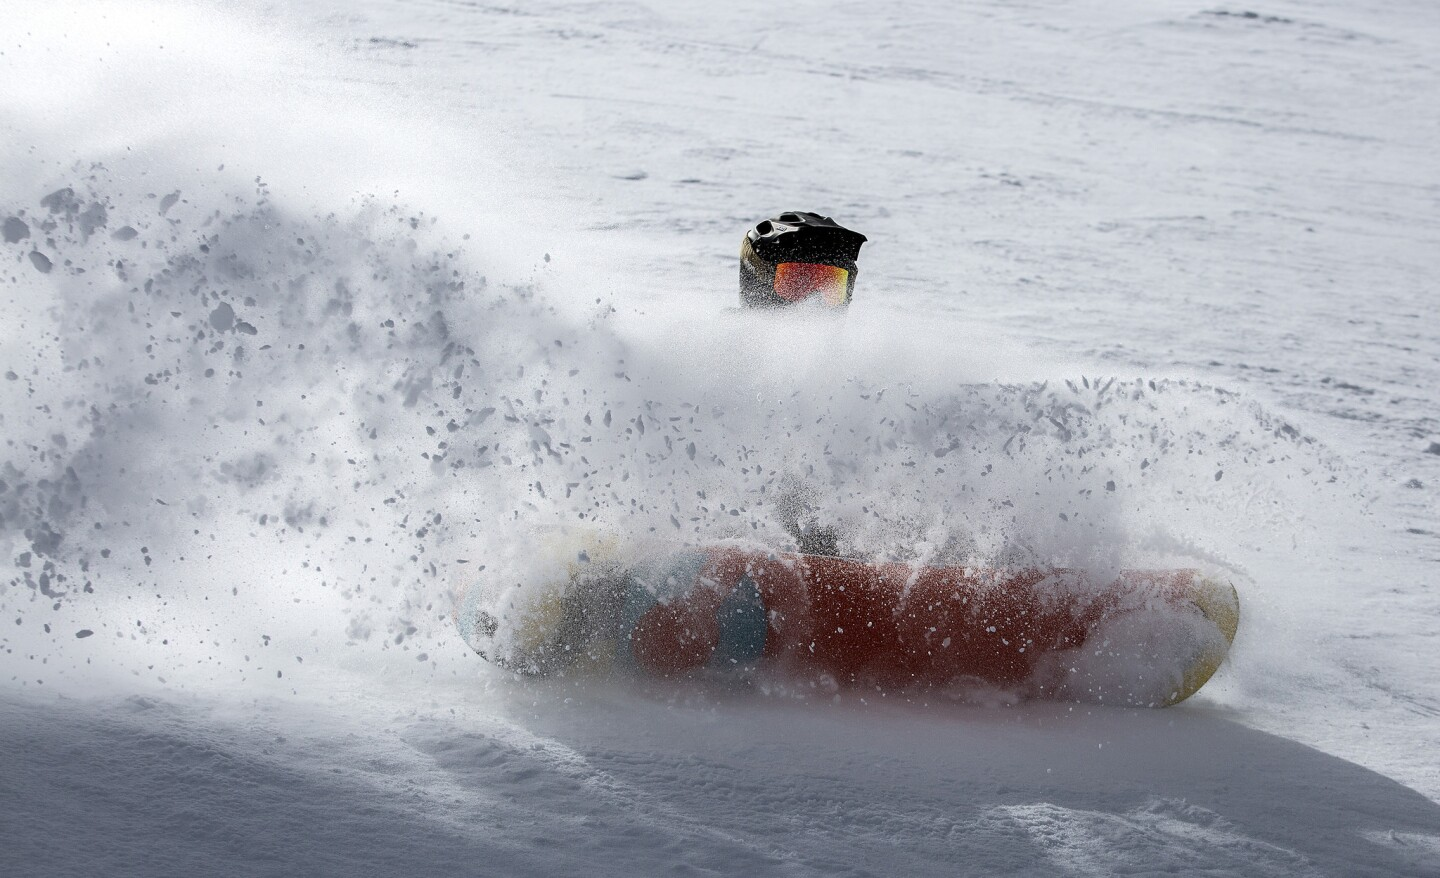 A snowboarder plows through the Cornice Bowl at Mammoth Mountain.